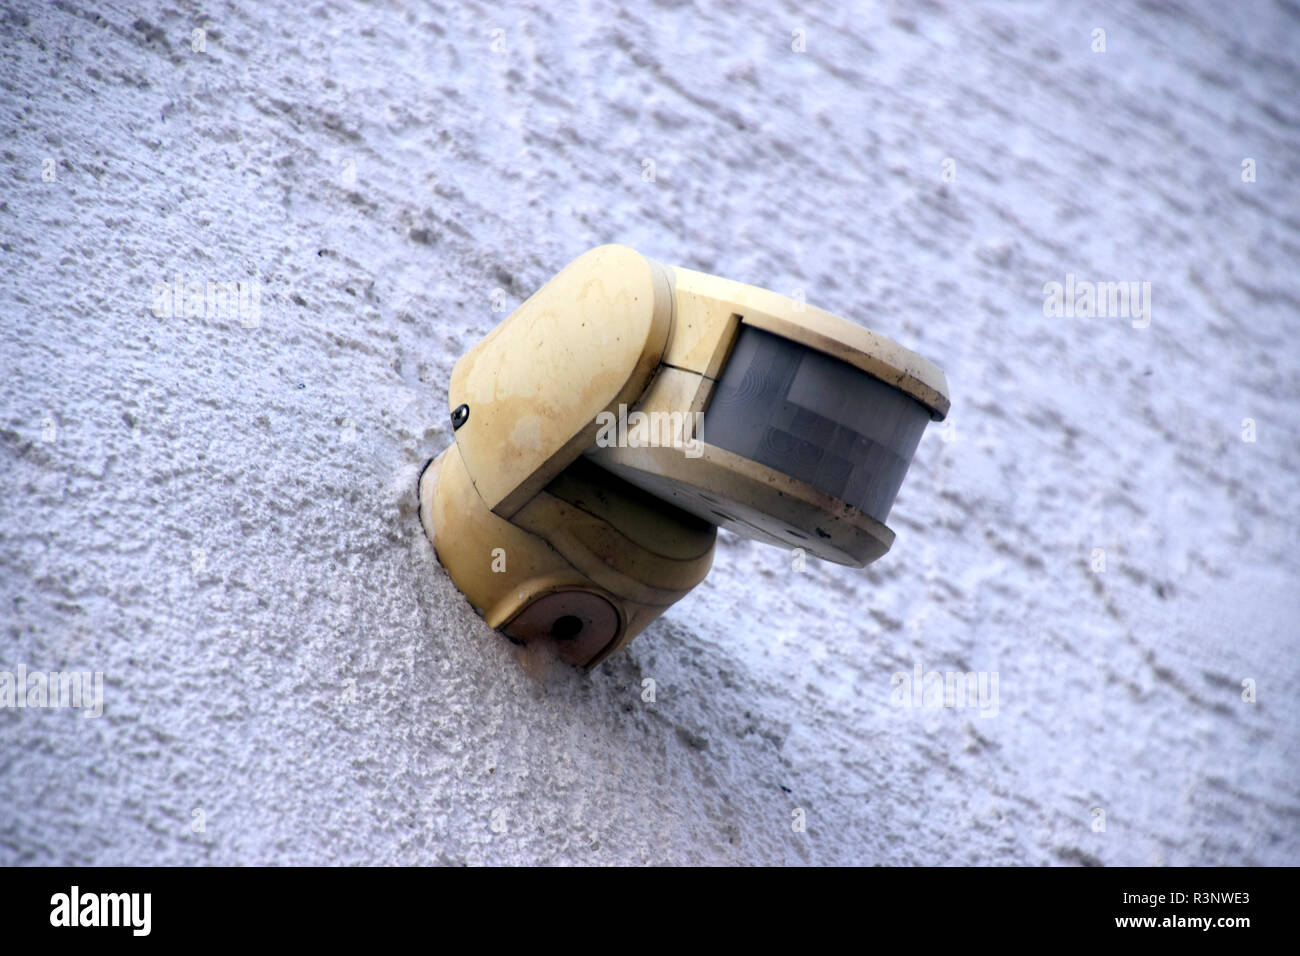 Tremendous Old And Dirty Motion Detector On A House Wall In The Outdoor Download Free Architecture Designs Embacsunscenecom